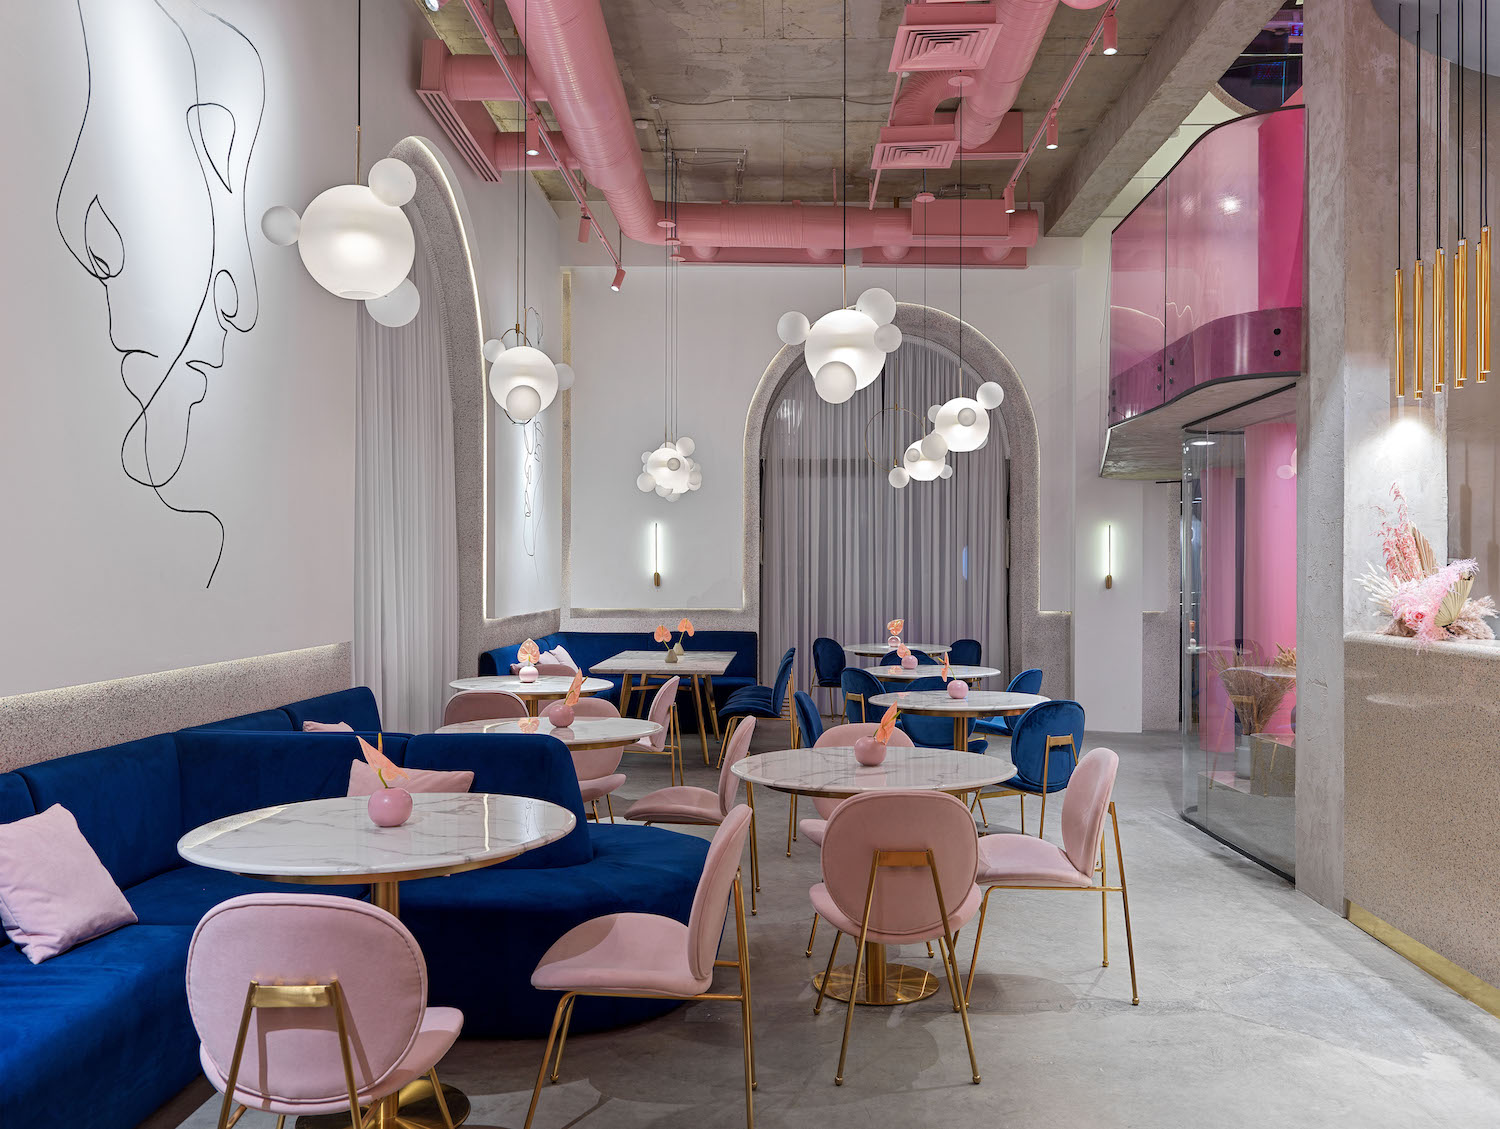 pink chairs and blue sofa in restaurant